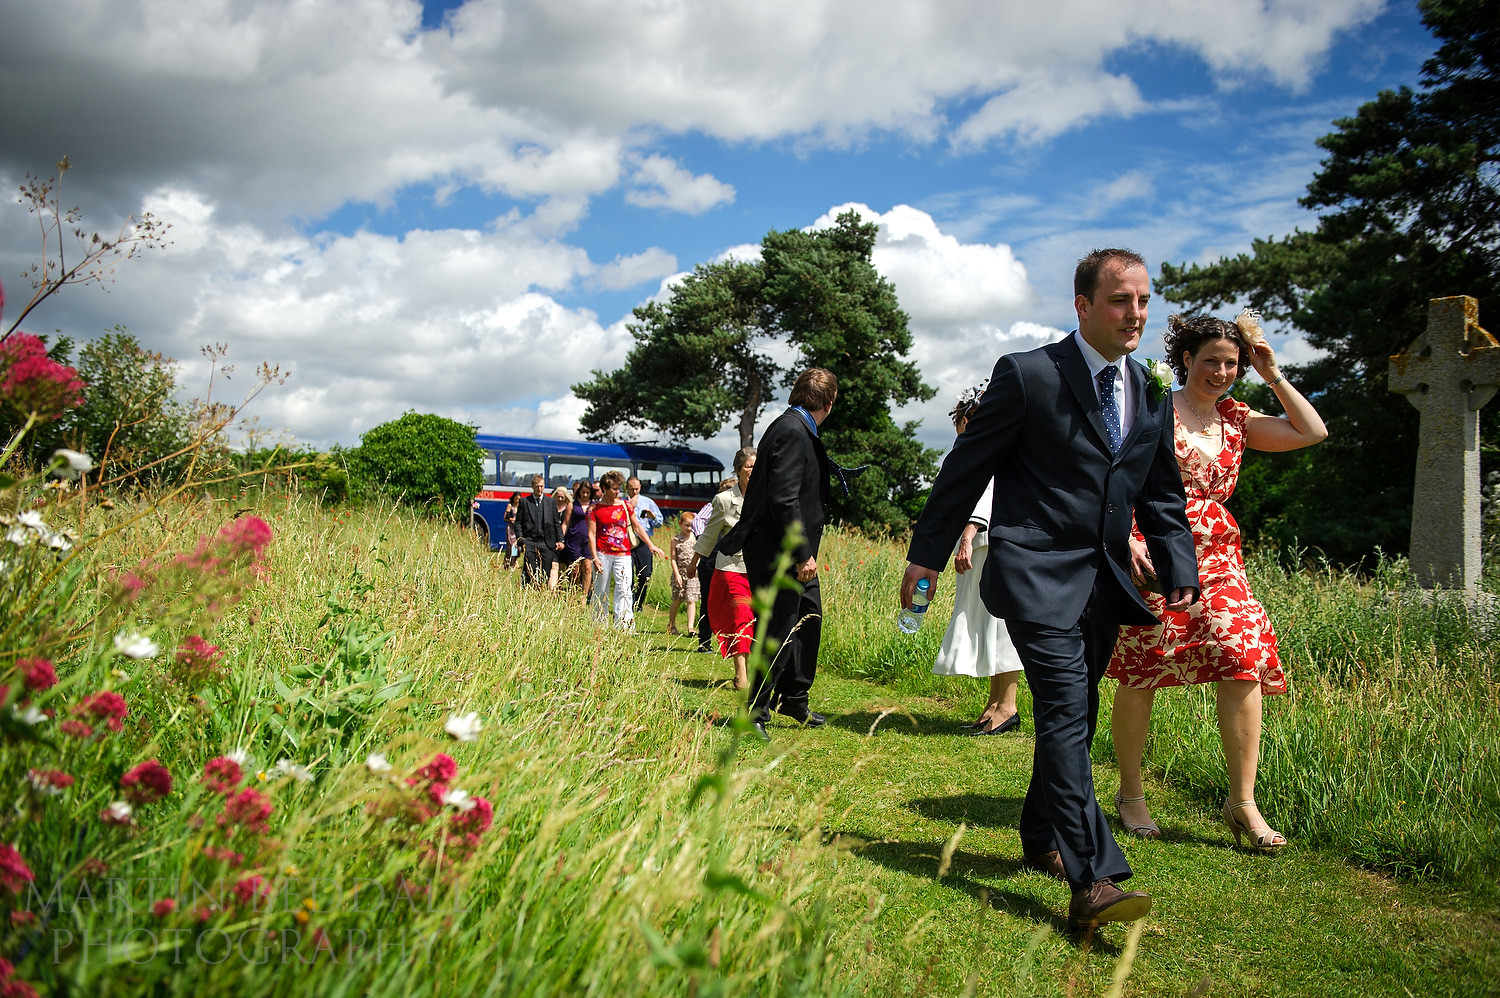 Groom leads the wedding guests to the Suffolk church